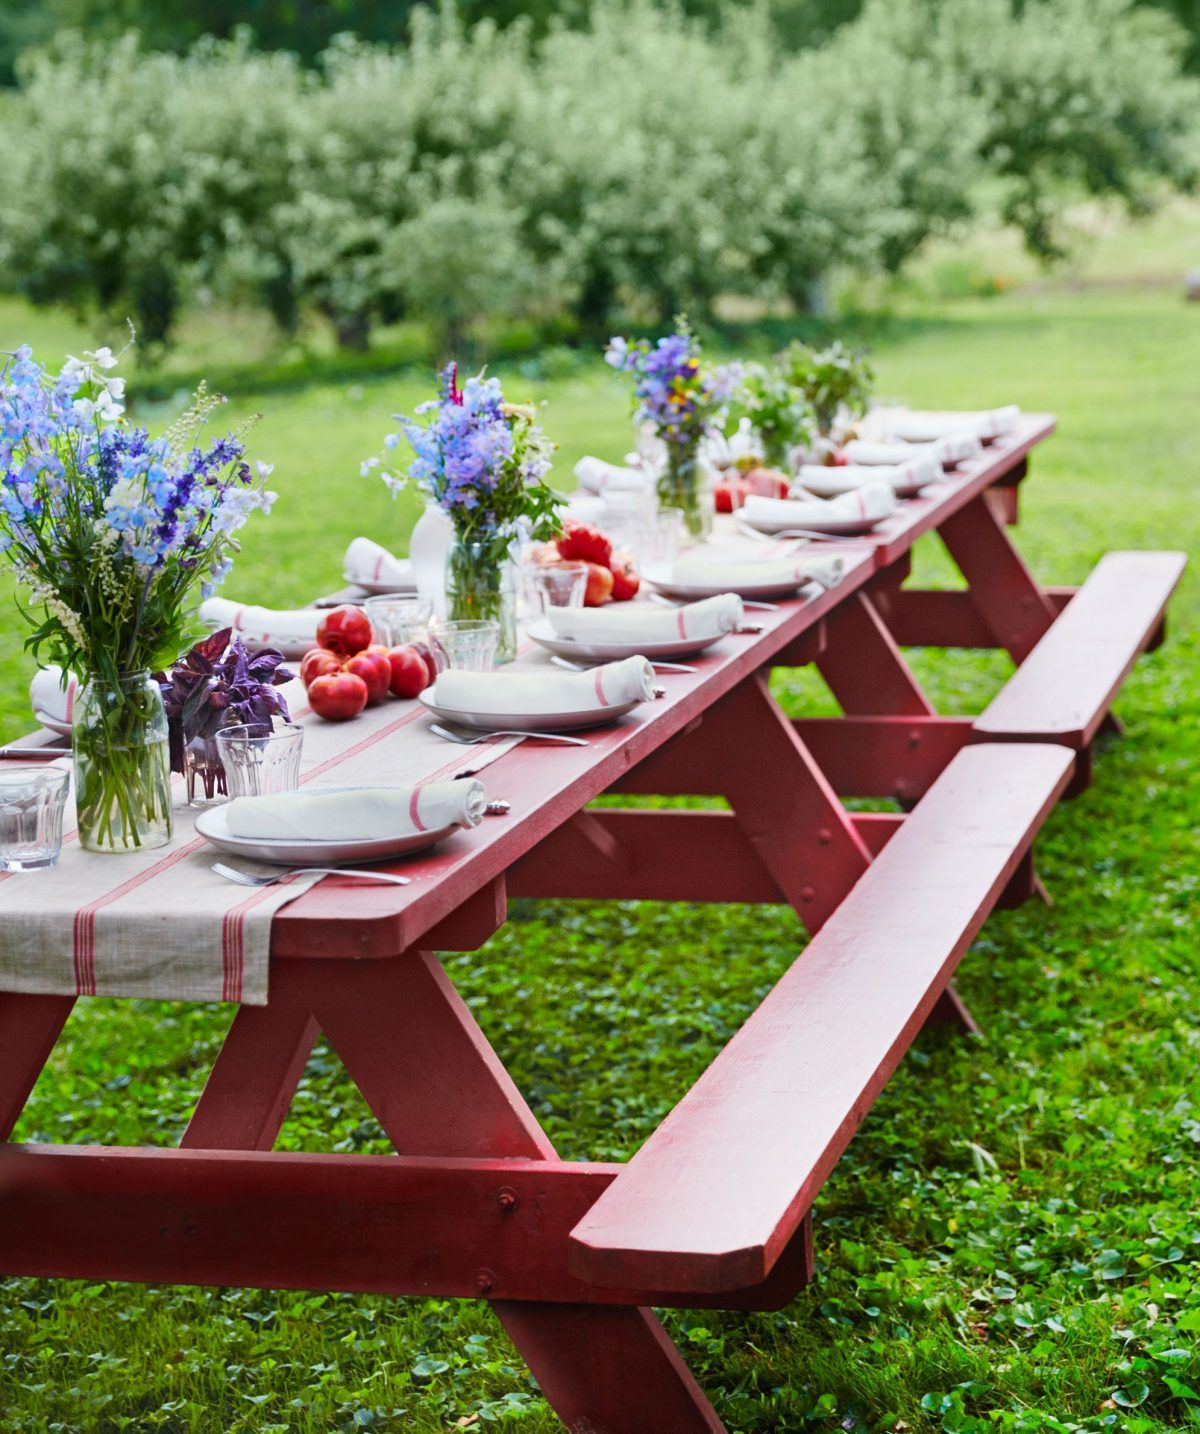 Outdoor Table Decor Easter Table Decorations Picnic Table Centerpieces Spring Table Settings